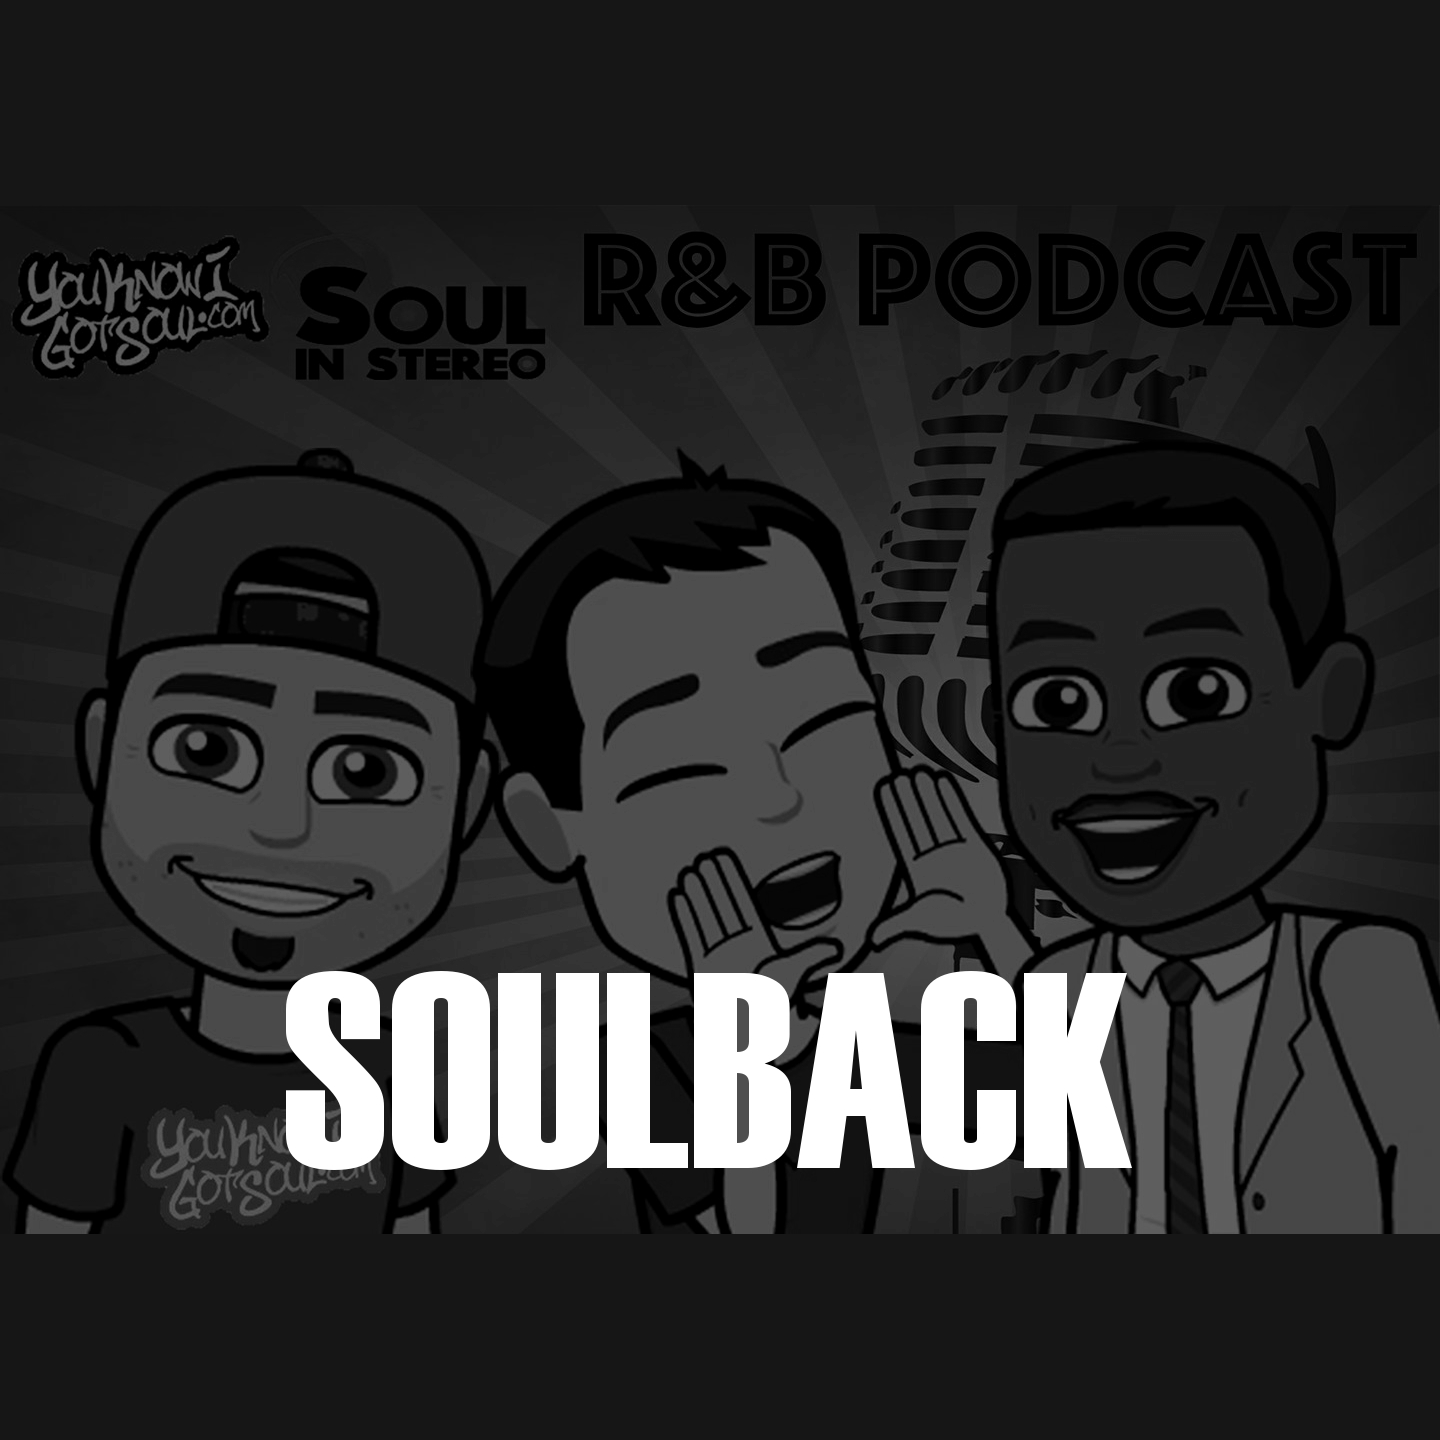 The SoulBack R&B Podcast